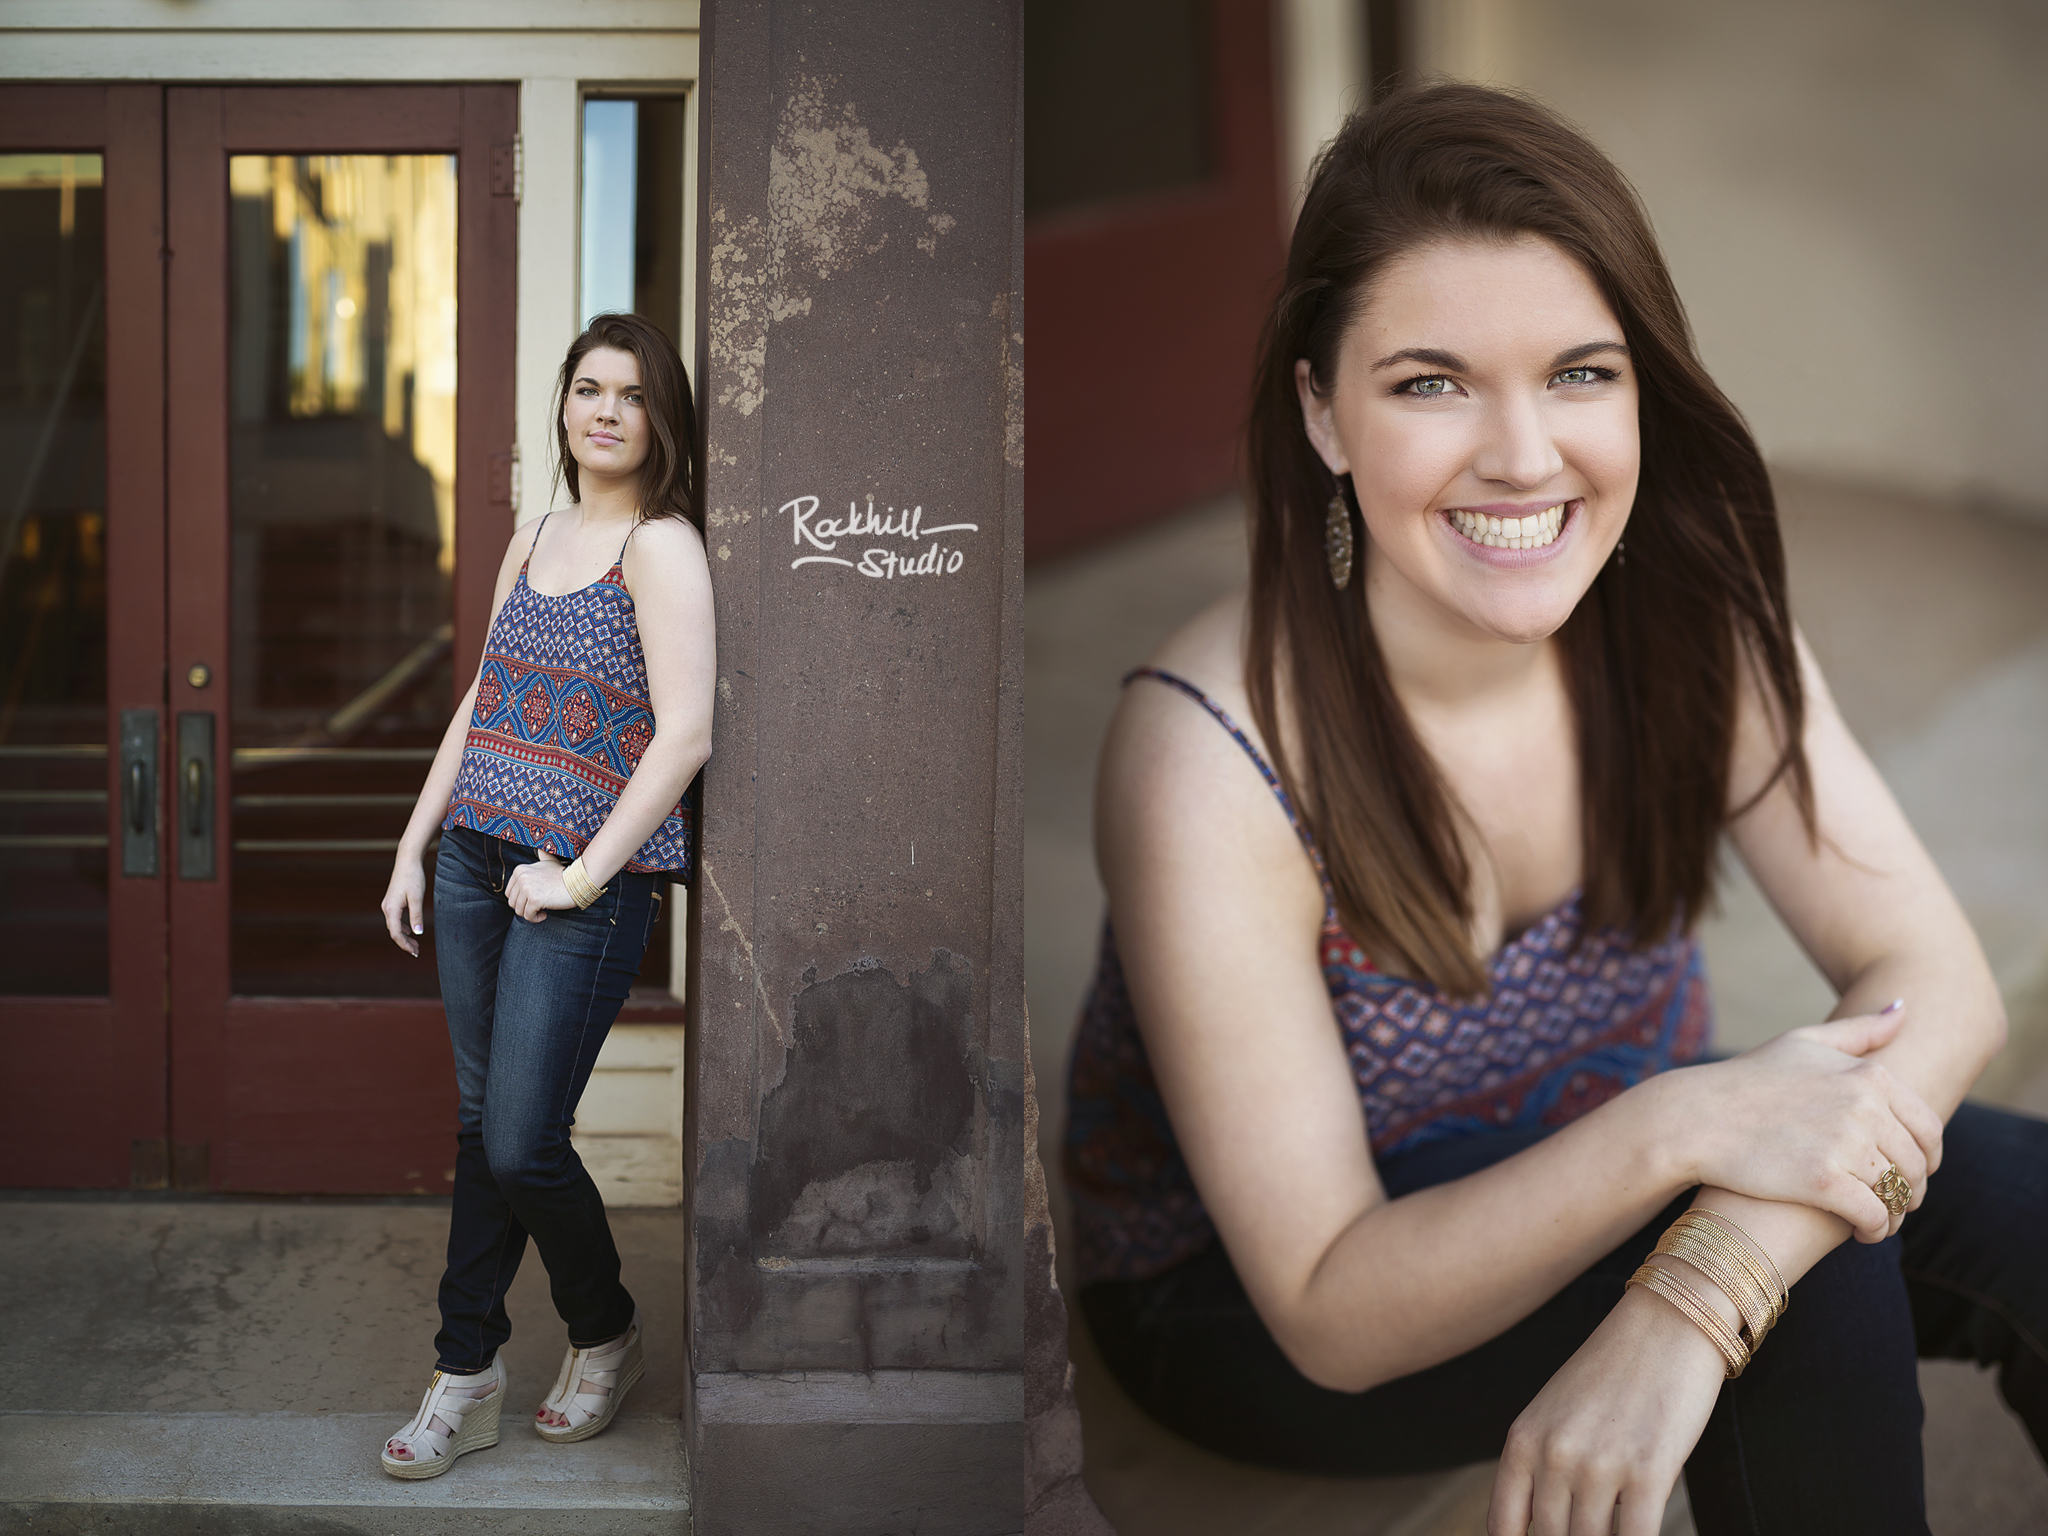 marquette-senior-portrait-photographer-michigan-6.jpg